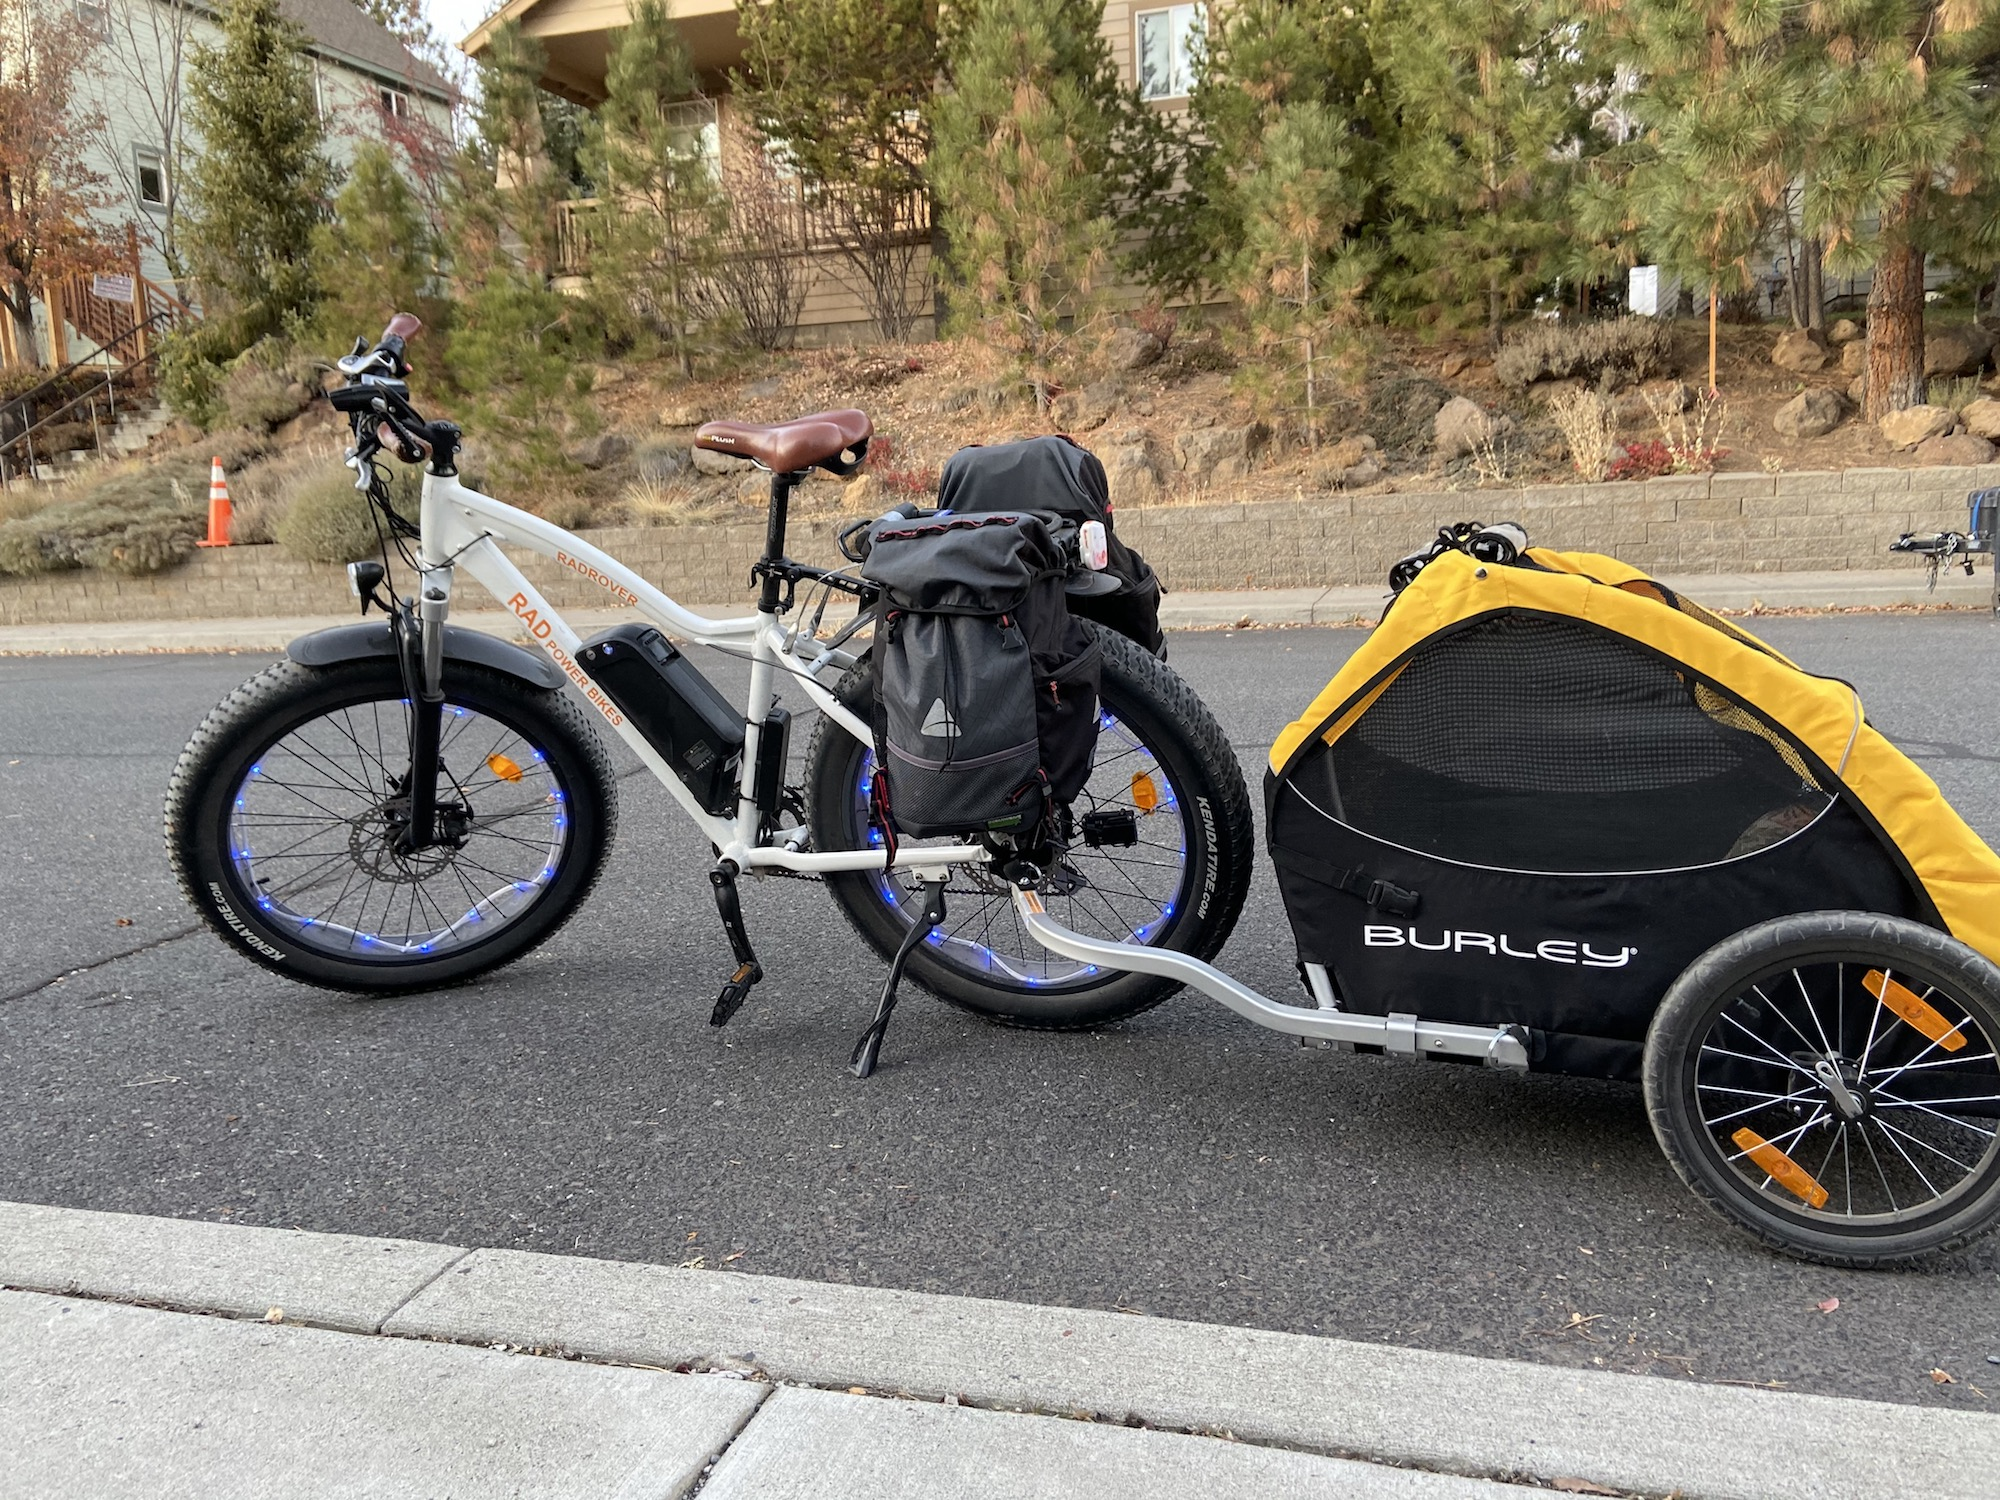 electric fatbike with dog burley trailer